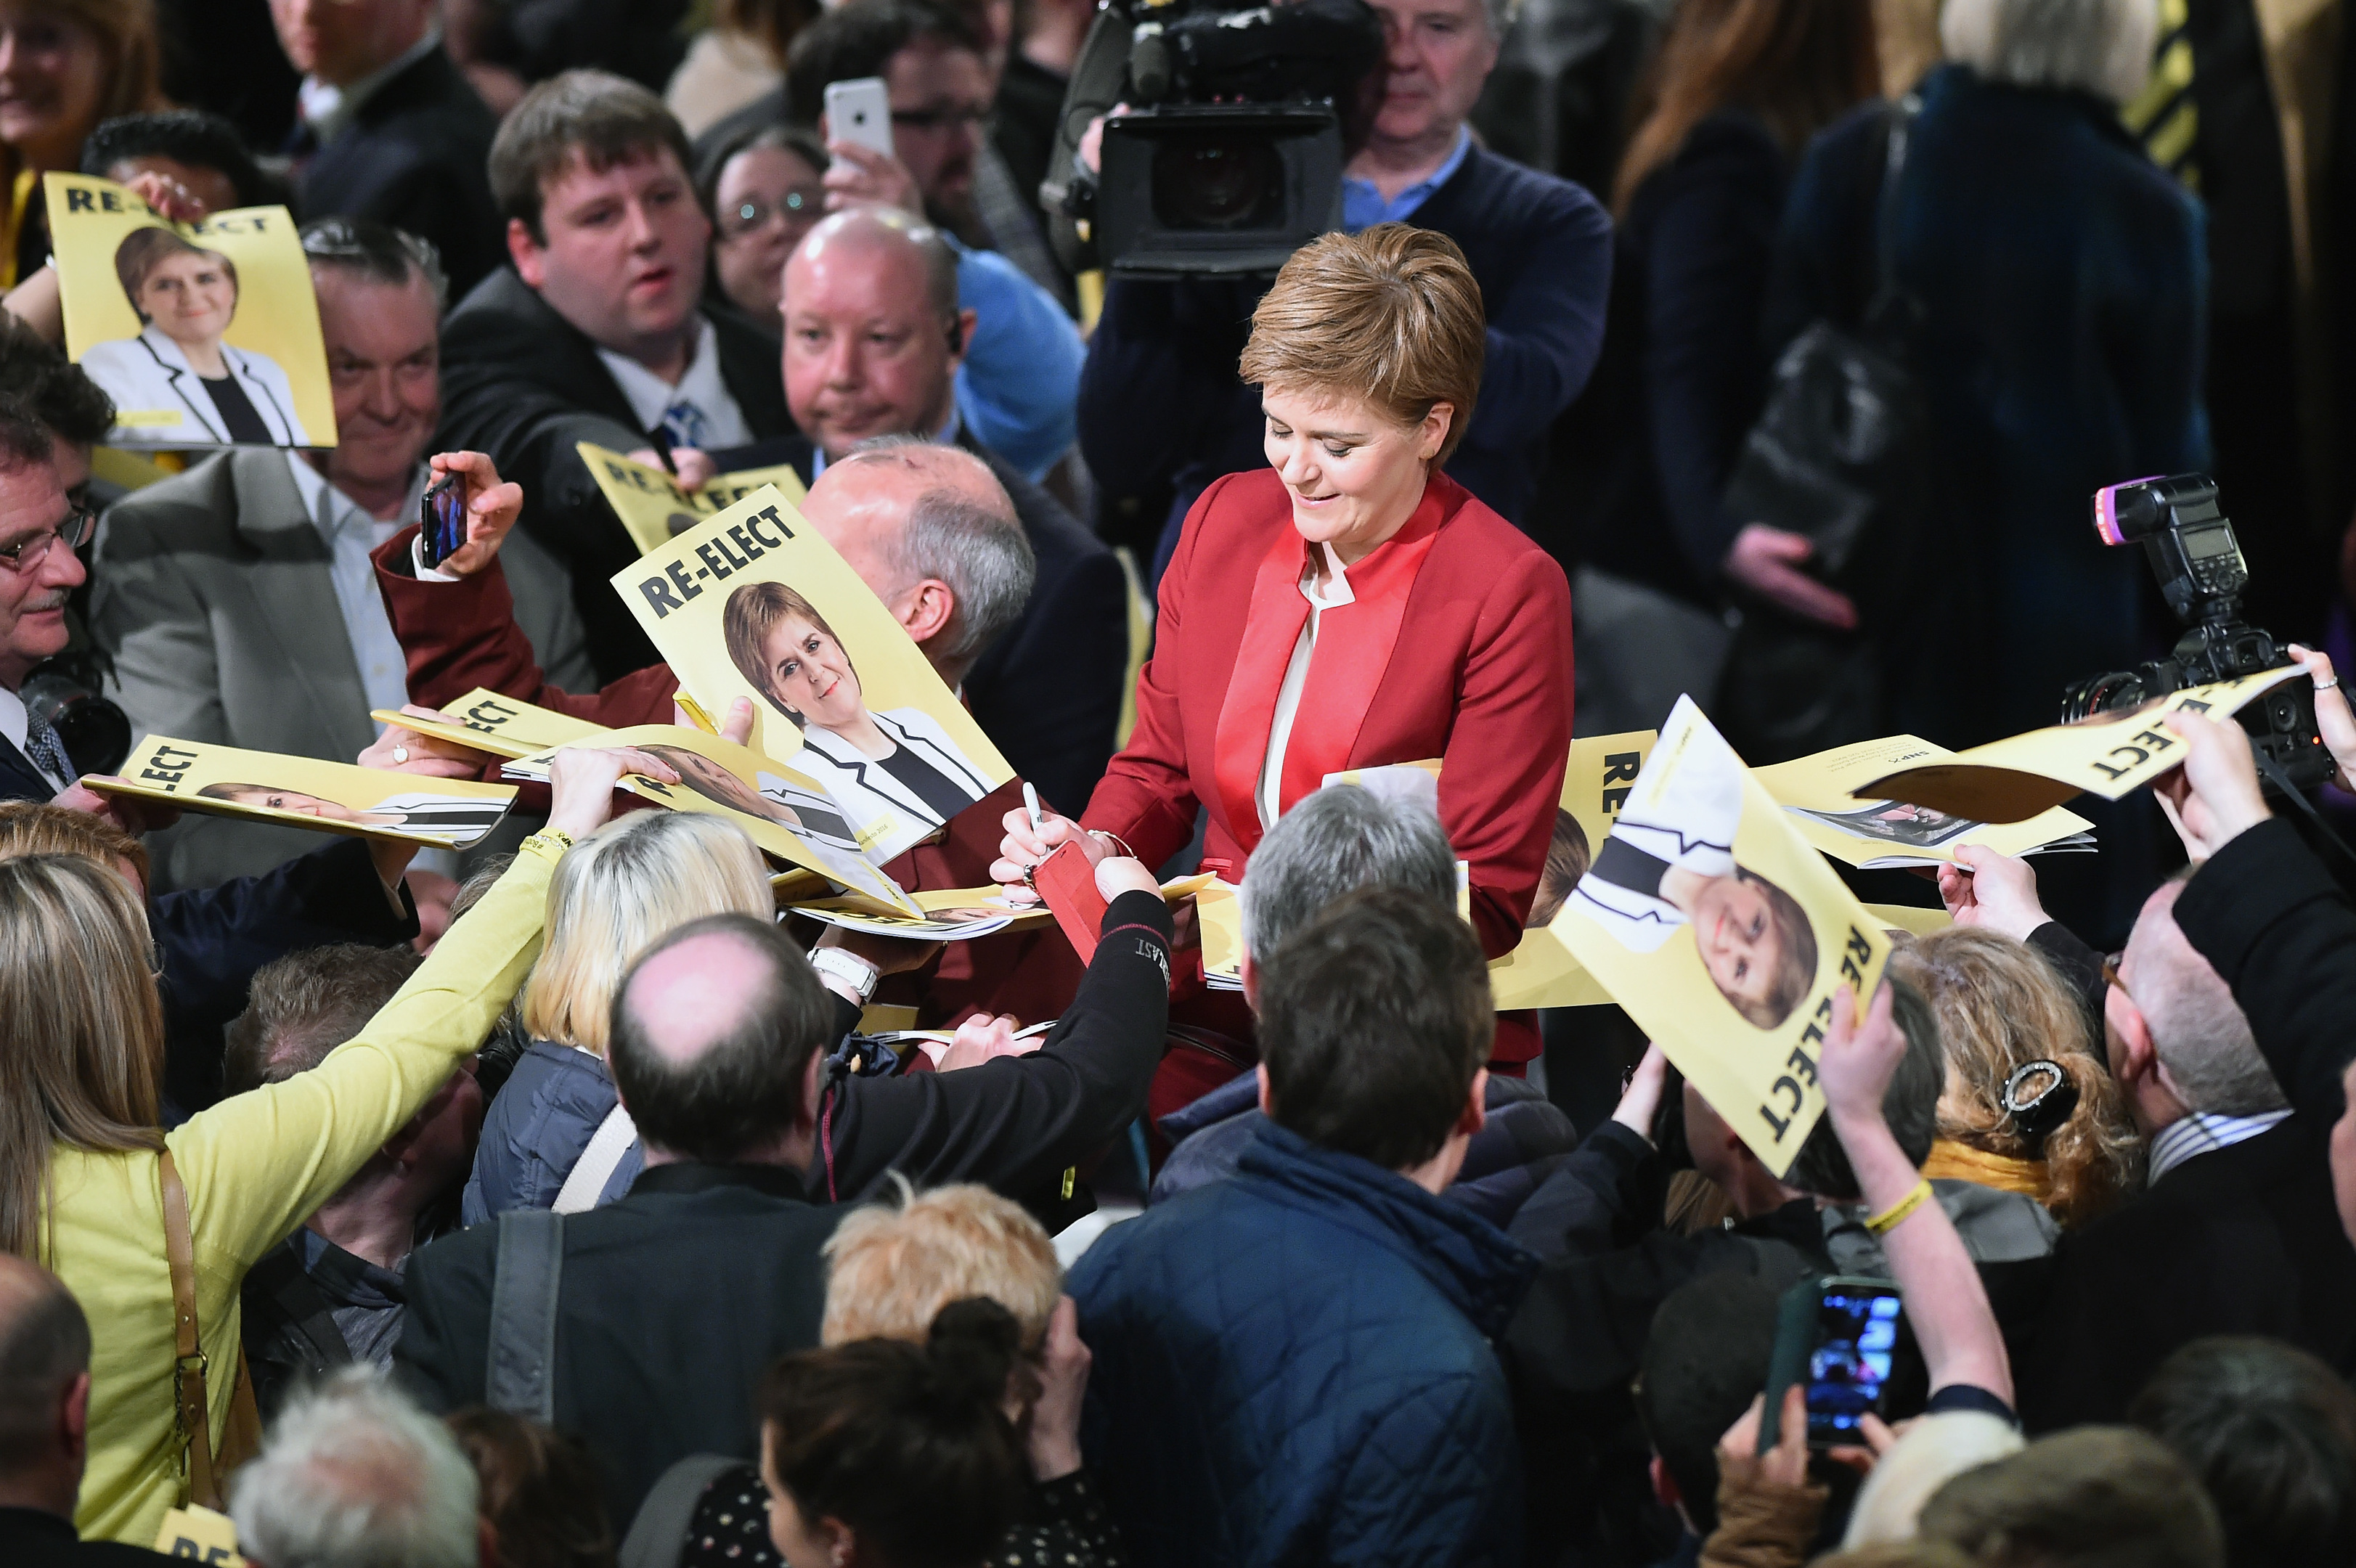 Nicola Sturgeon signs manifesto copies and posters during the launch.